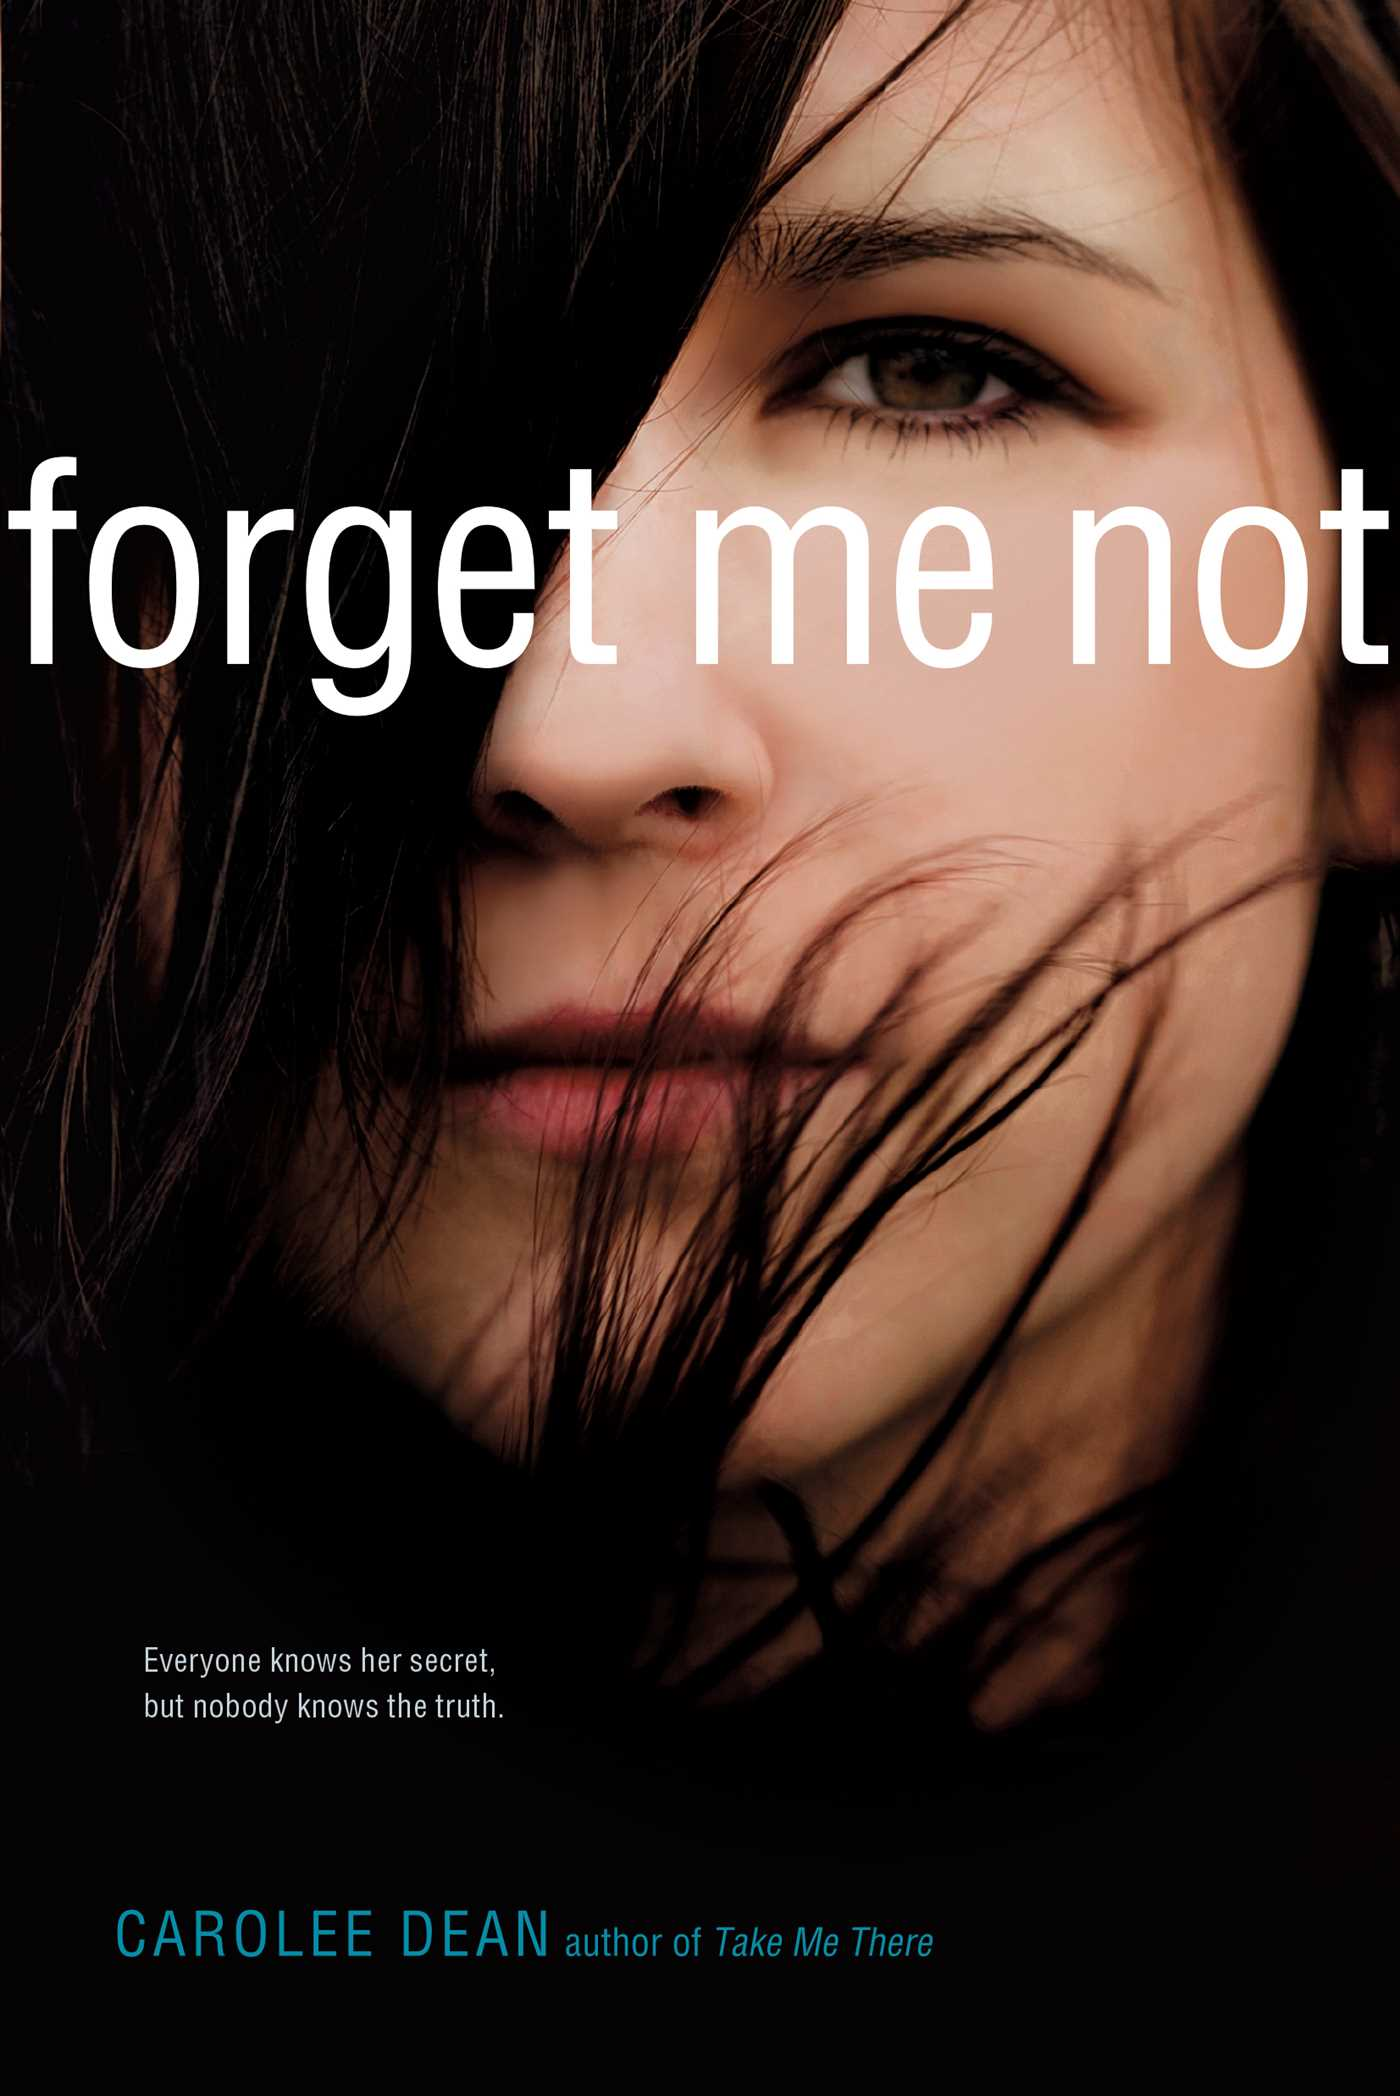 Forget me not 9781442432567 hr